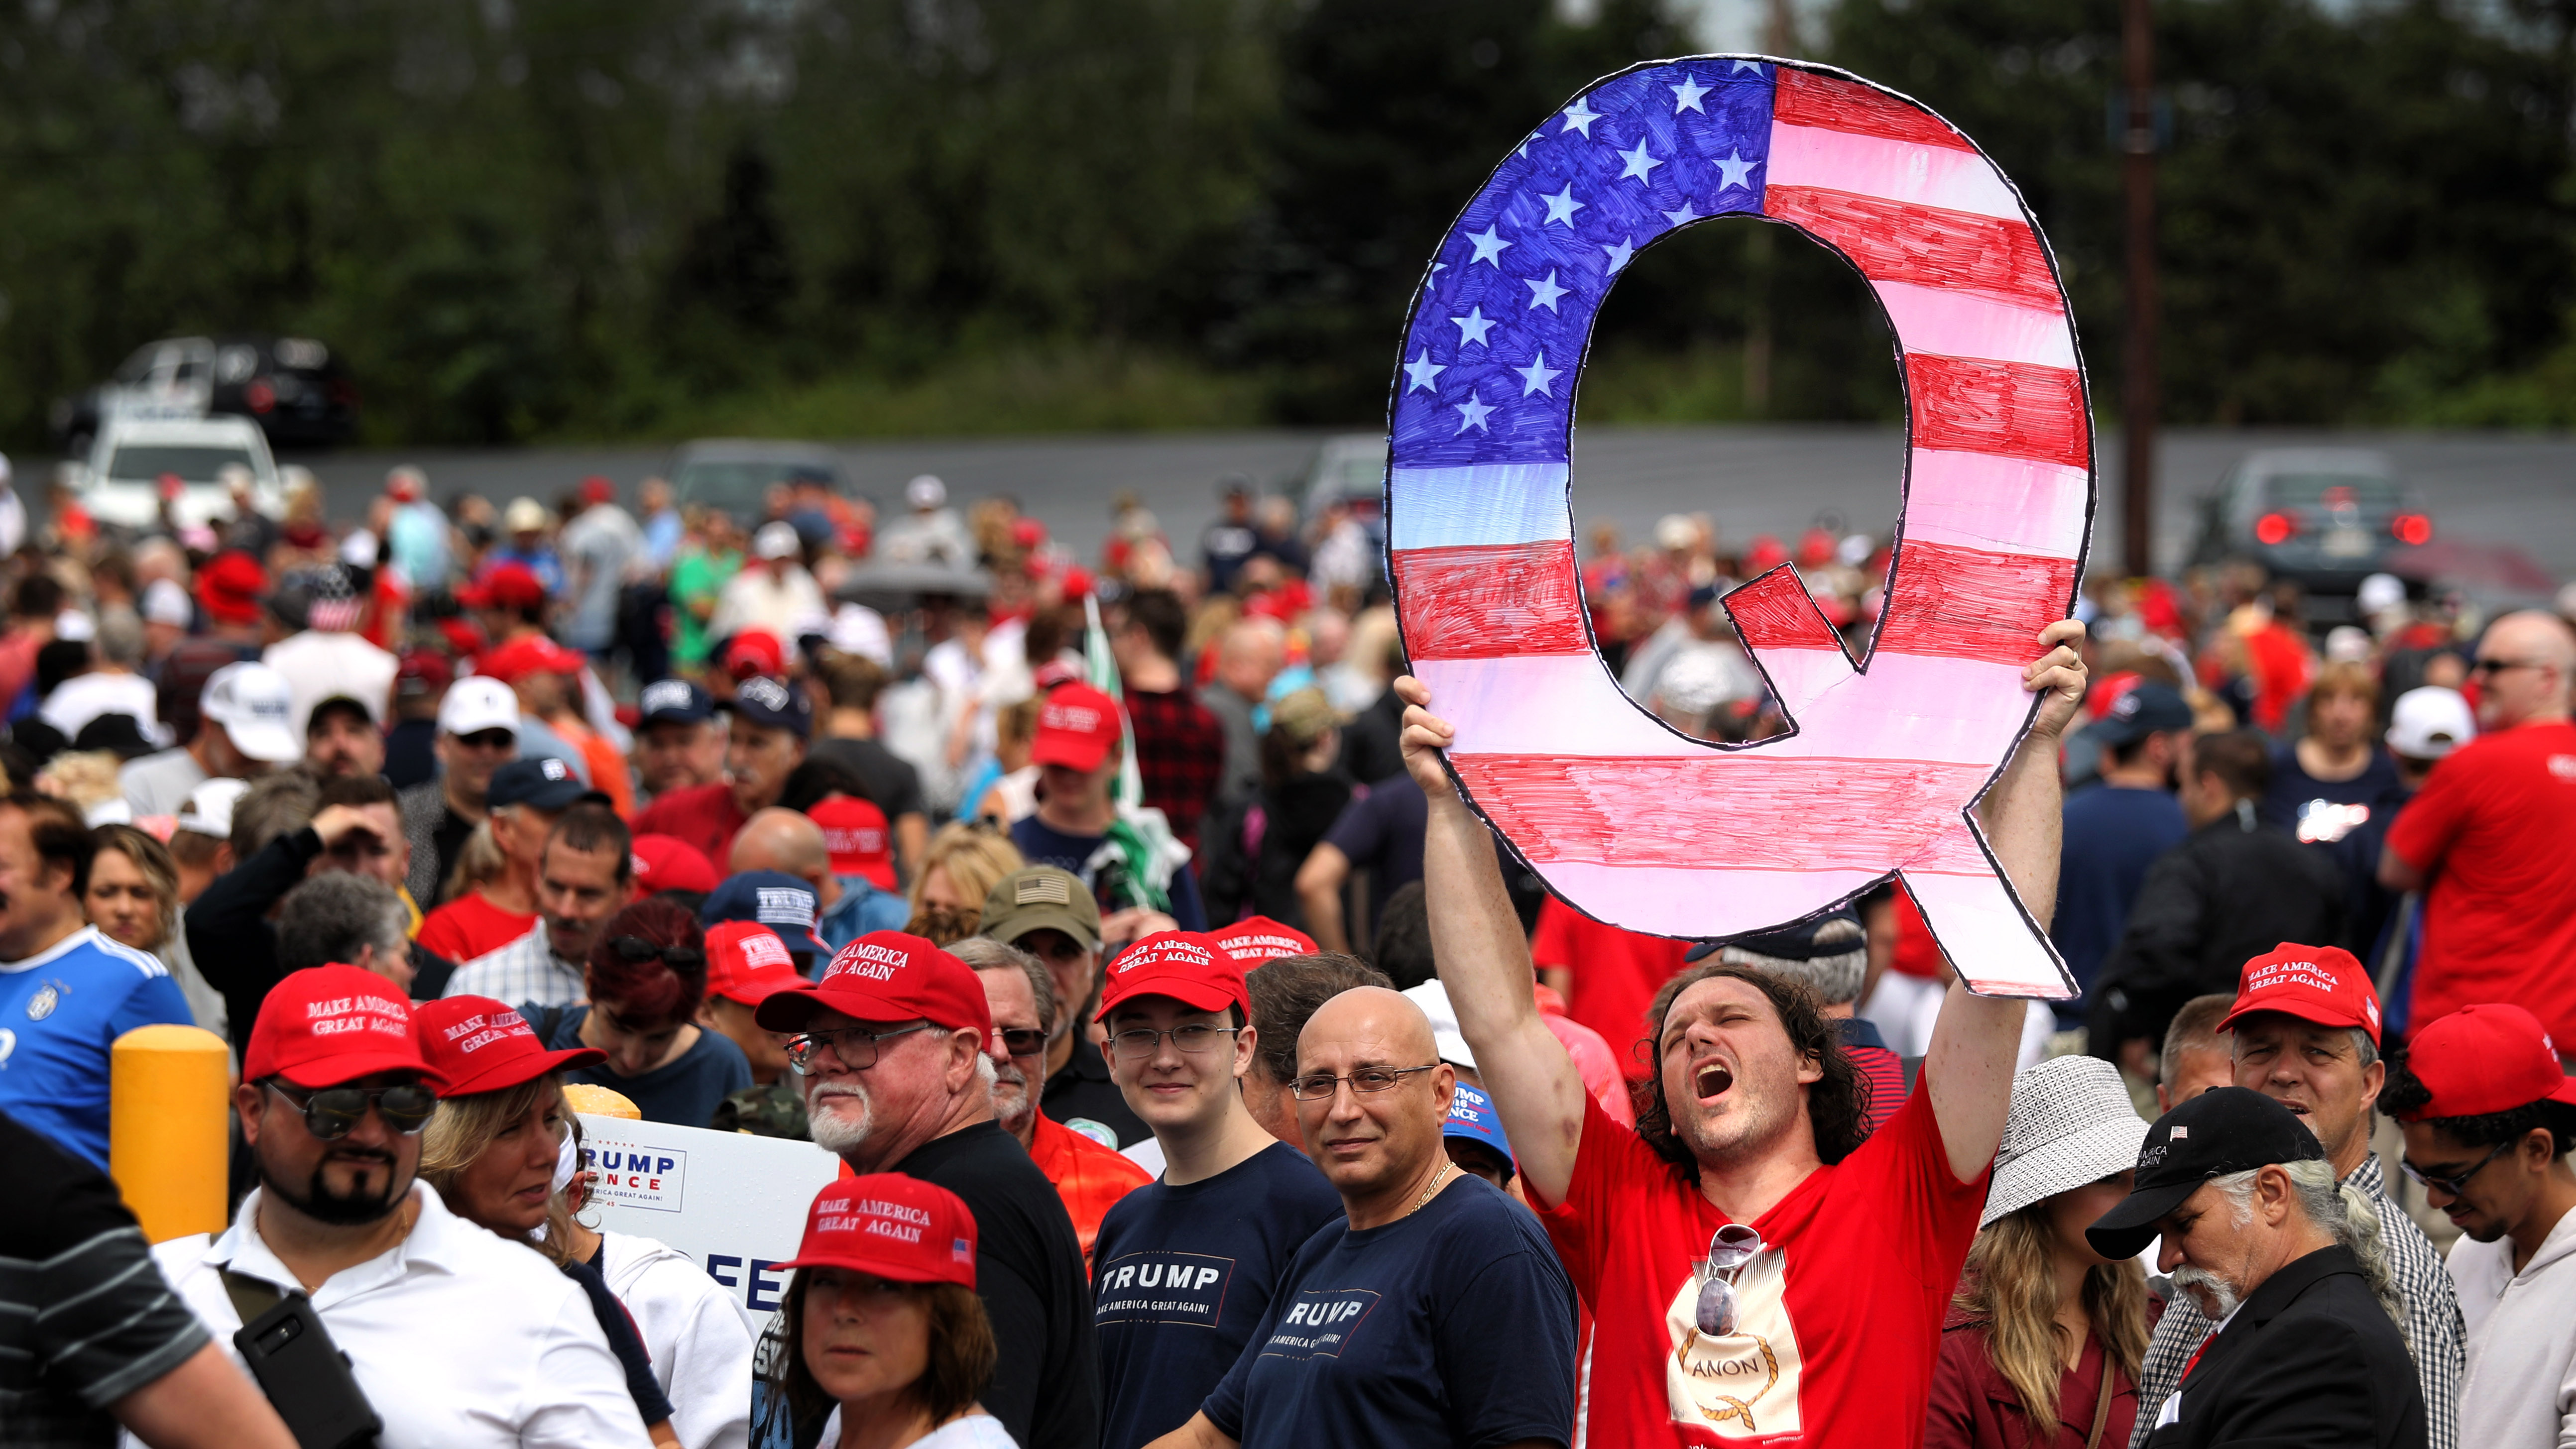 Facebook Shutting Down Qanon Accounts Is A Little Too Late Marketplace